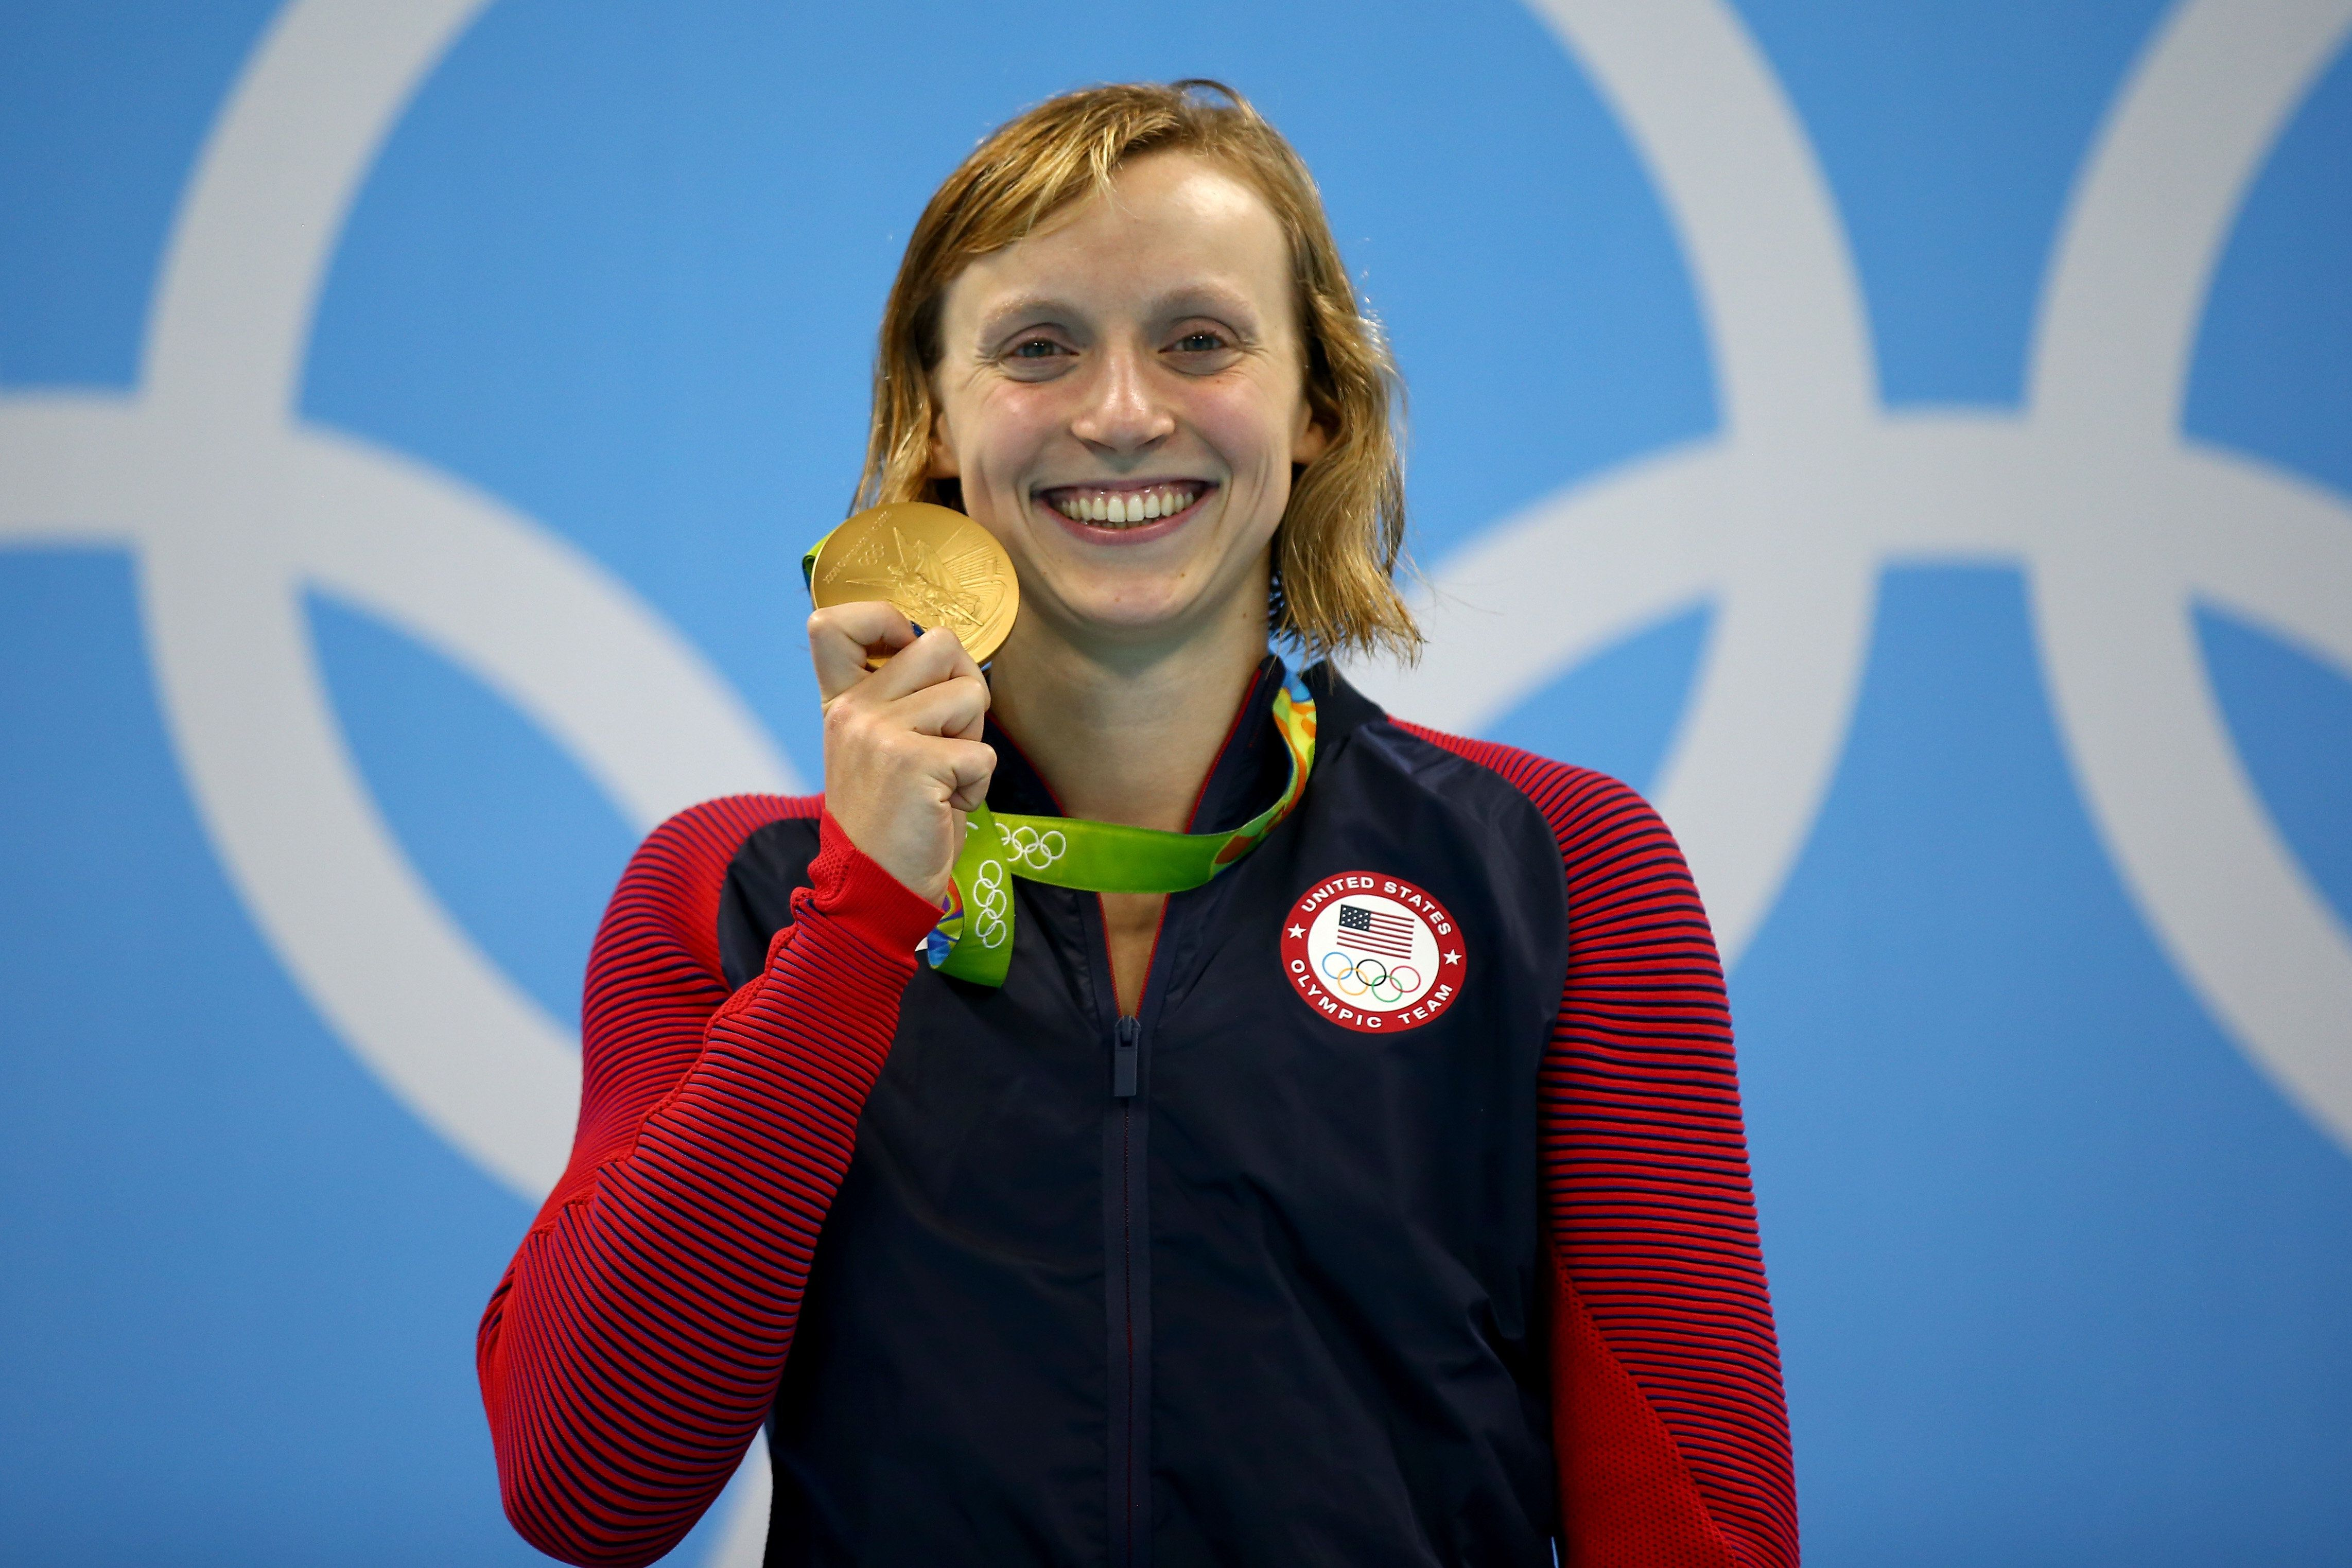 RIO DE JANEIRO, BRAZIL - AUGUST 12:  Katie Ledecky of United States celebrates on the podium after winning gold in the Women's 800m Freestyle Final on Day 7 of the Rio 2016 Olympic Games at the Olympic Aquatics Stadium on August 12, 2016 in Rio de Janeiro, Brazil.  (Photo by Clive Rose/Getty Images)